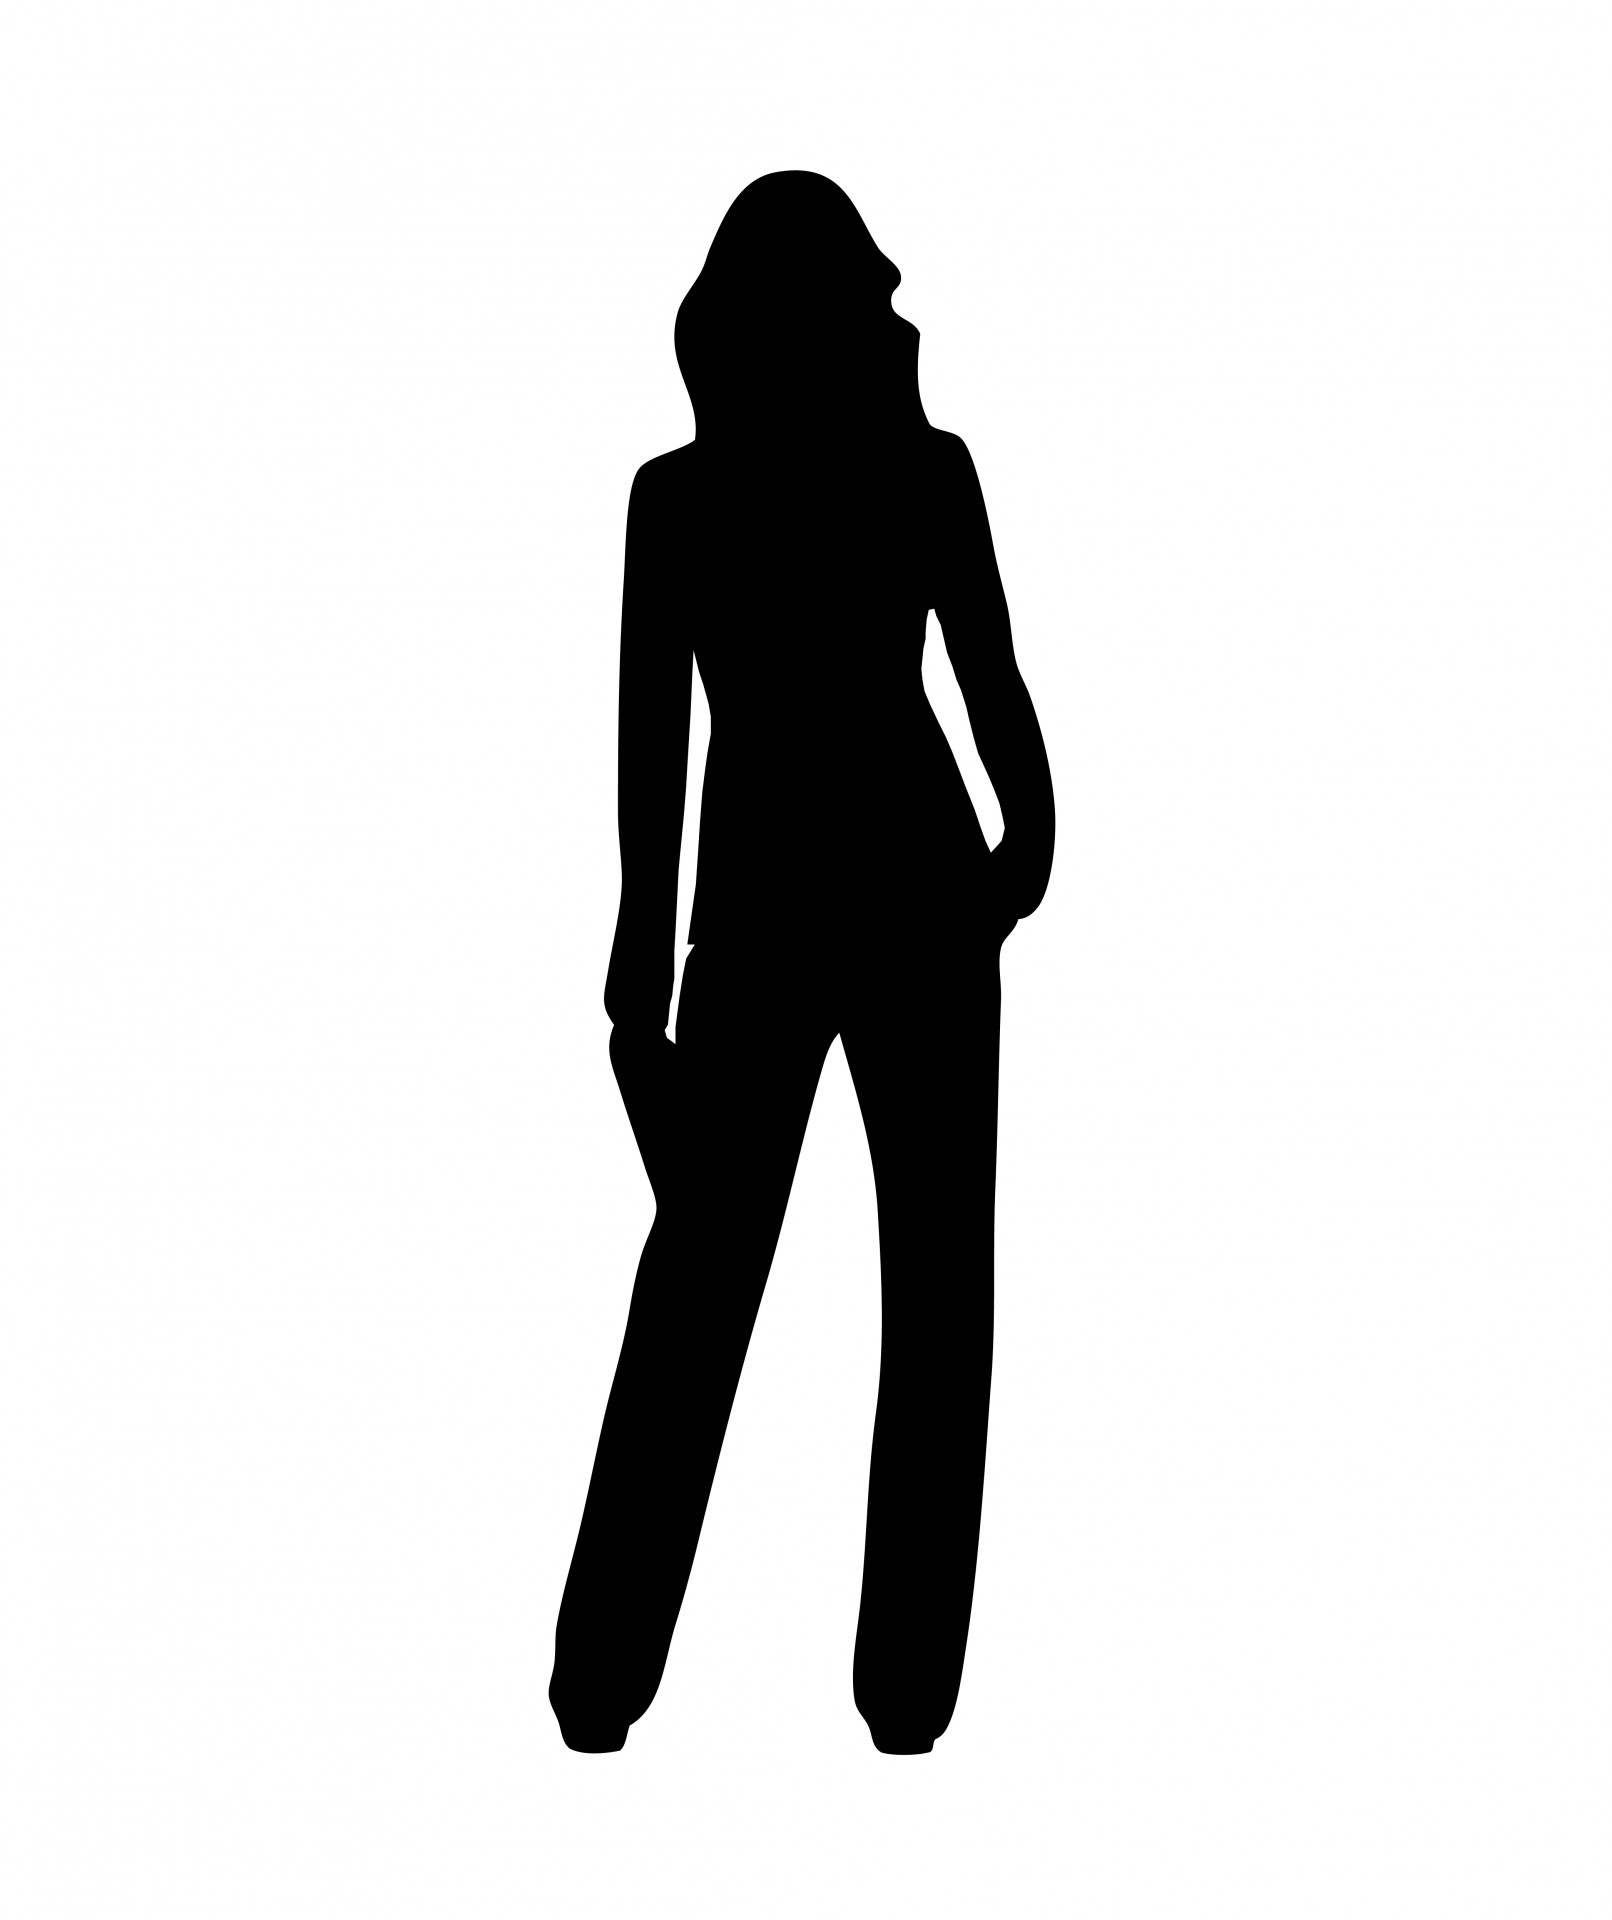 Woman Standing Silhouette - ClipArt Best